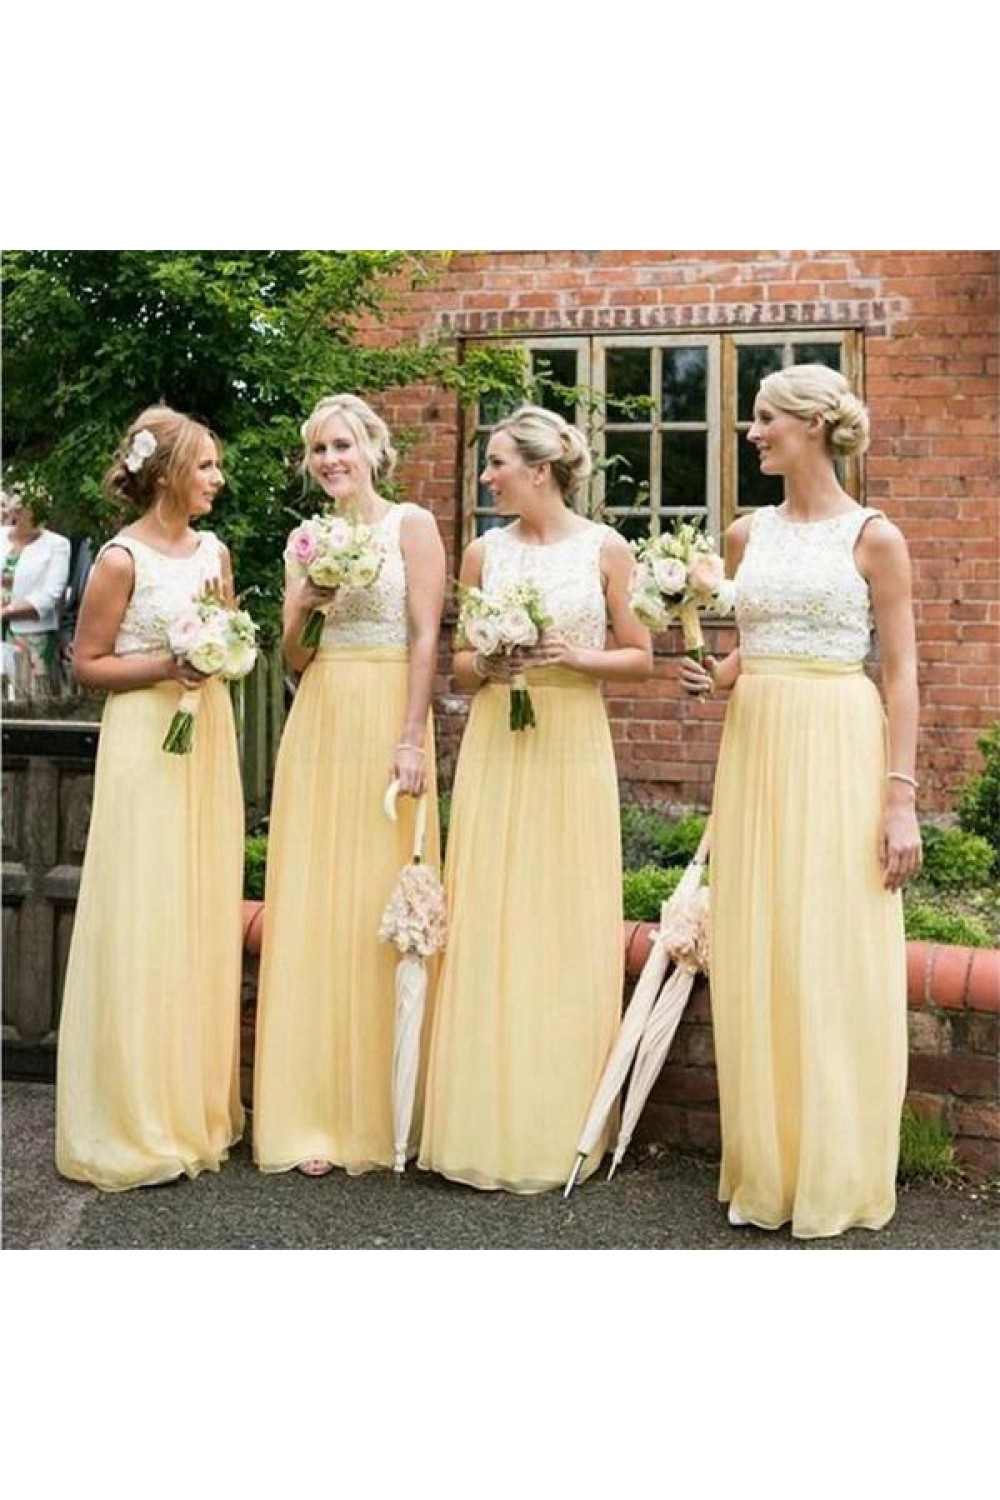 Floor Long Yellow Lace Wedding Guest Dresses Bridesmaid Dresses Yellow Bridesmaid Dresses Asos Yellow Bridesmaid Dresses Cheap wedding dress Yellow Bridesmaid Dresses